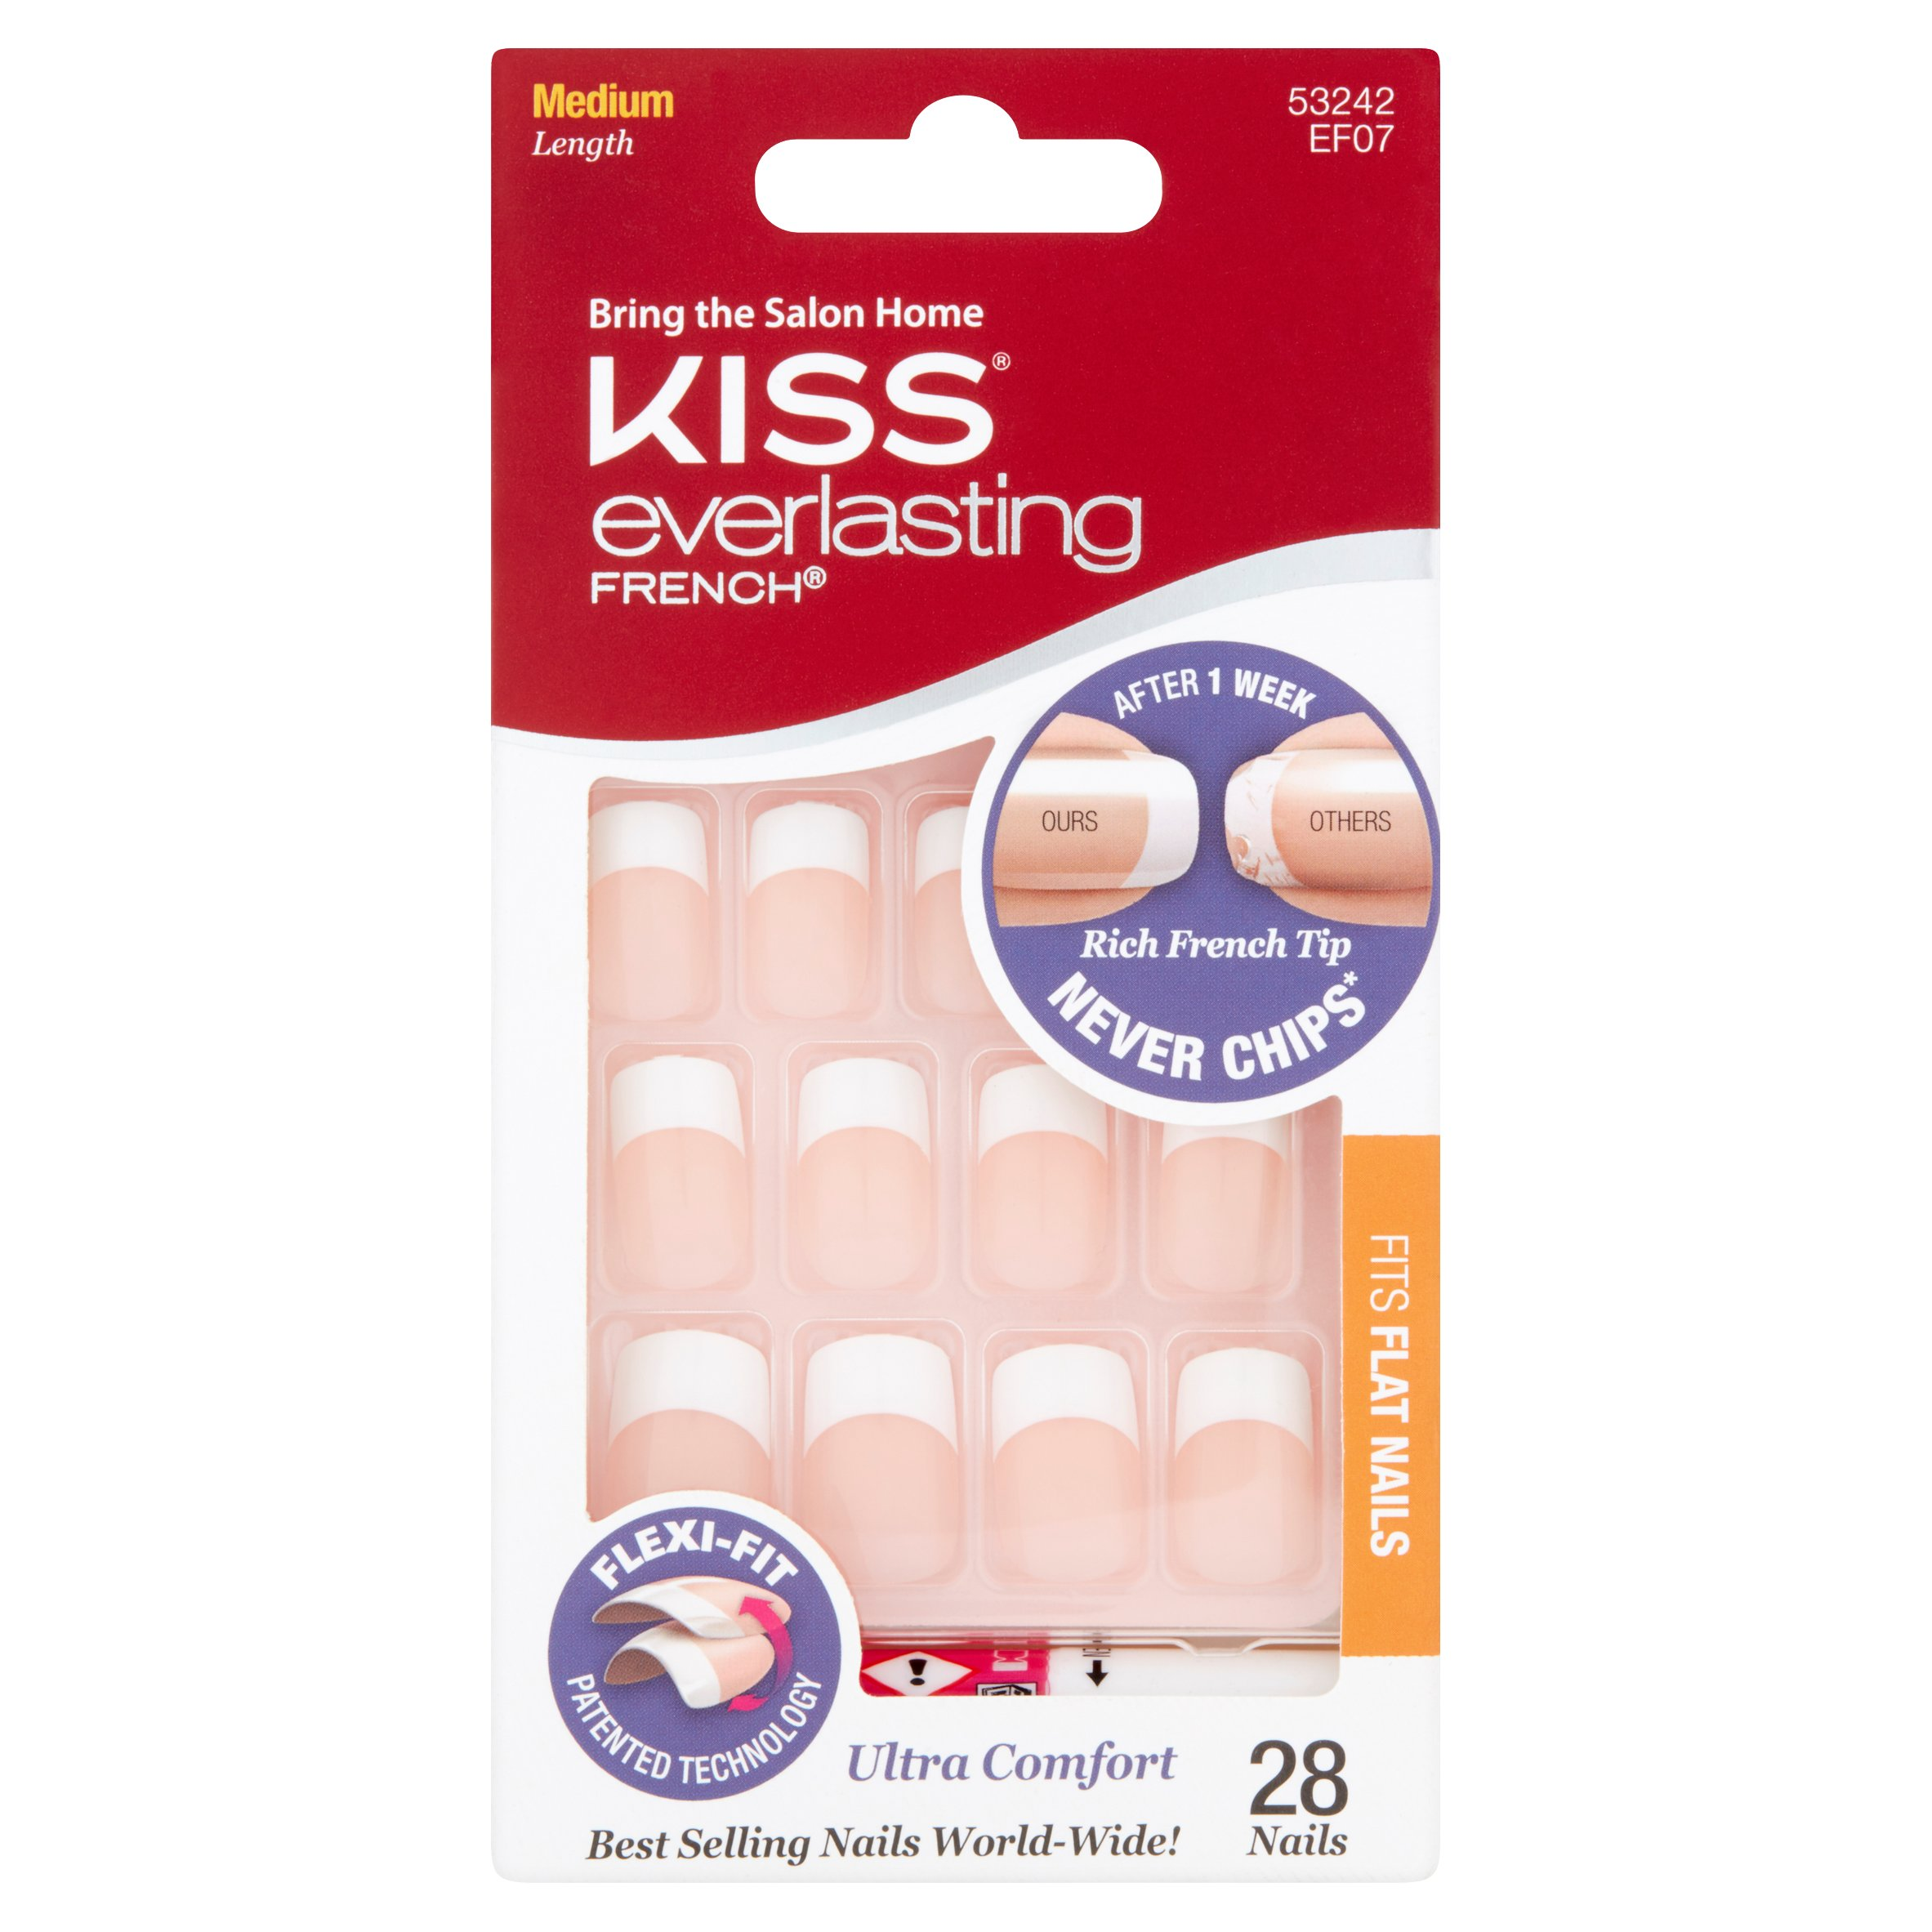 Kiss Everlasting French Nail Kit, 28ct